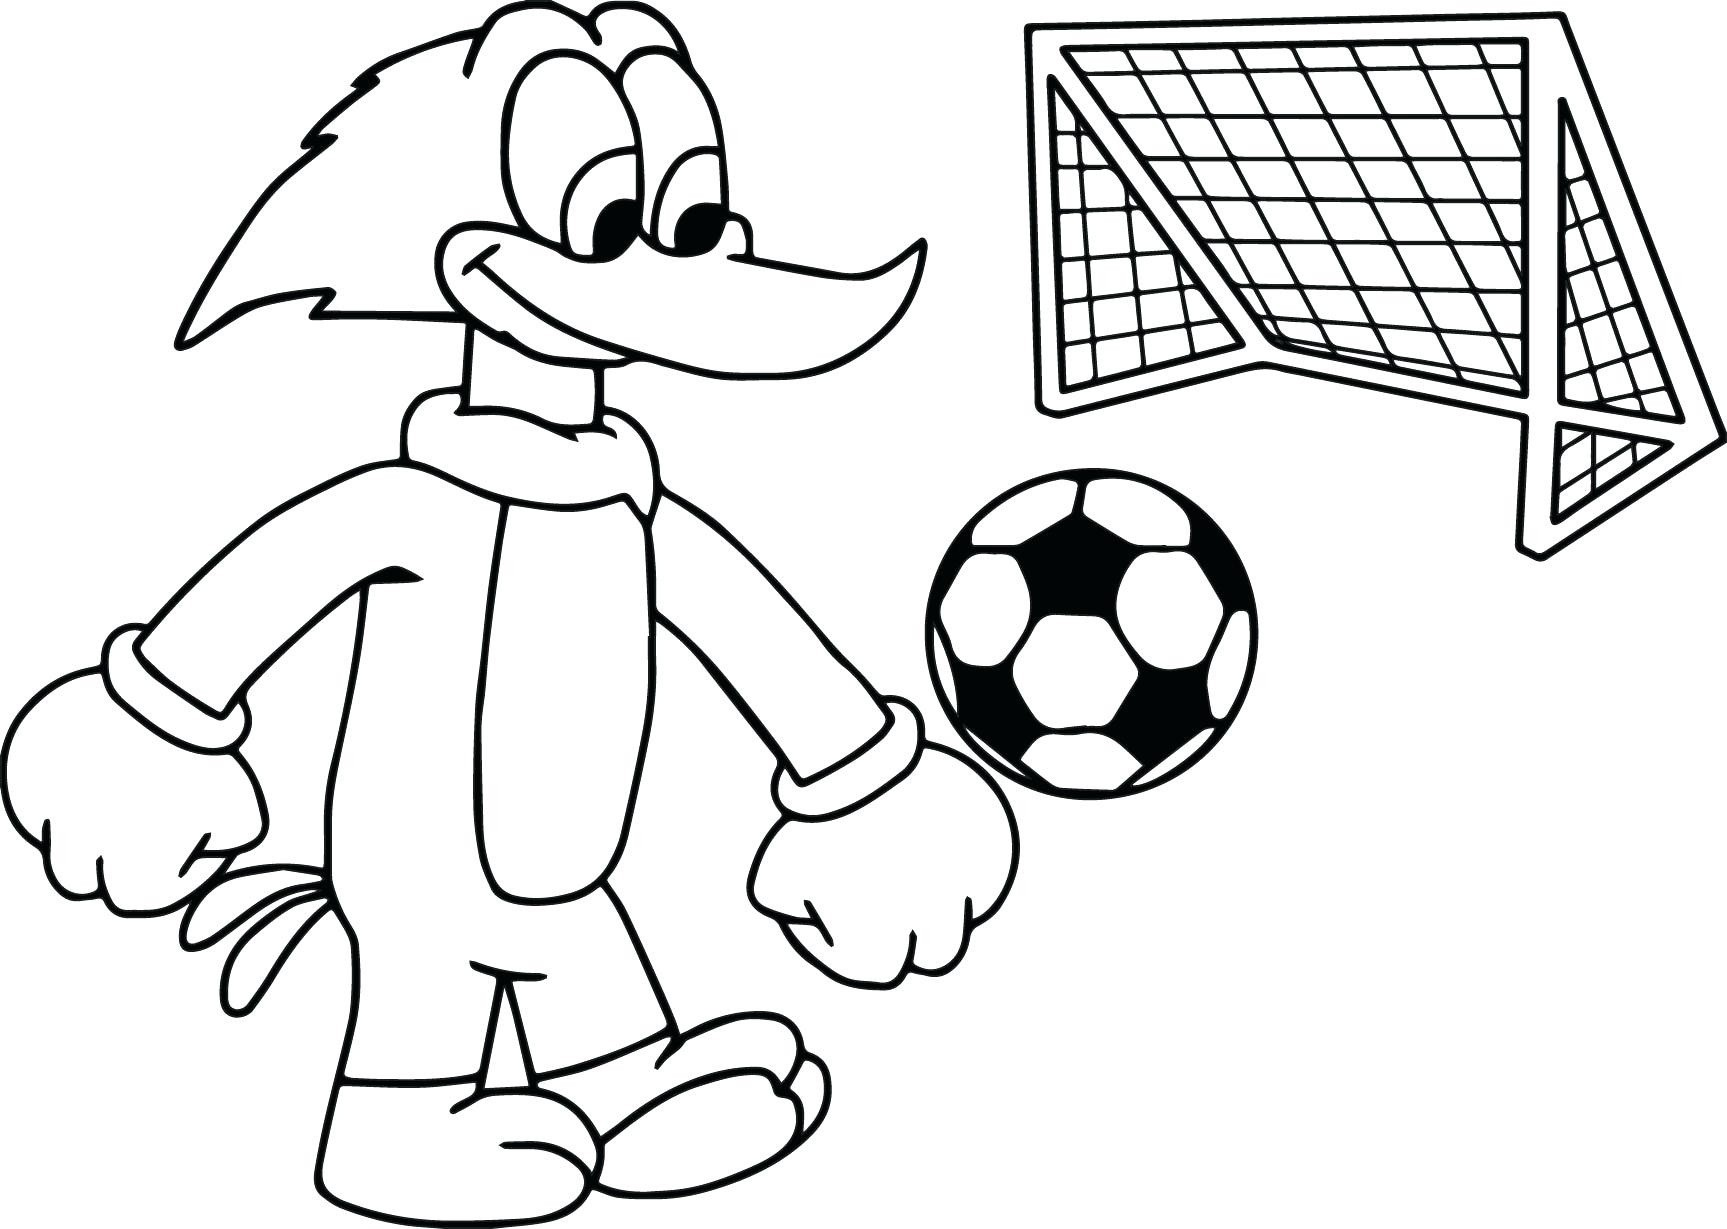 Ronaldo Coloring Pages At Getcolorings